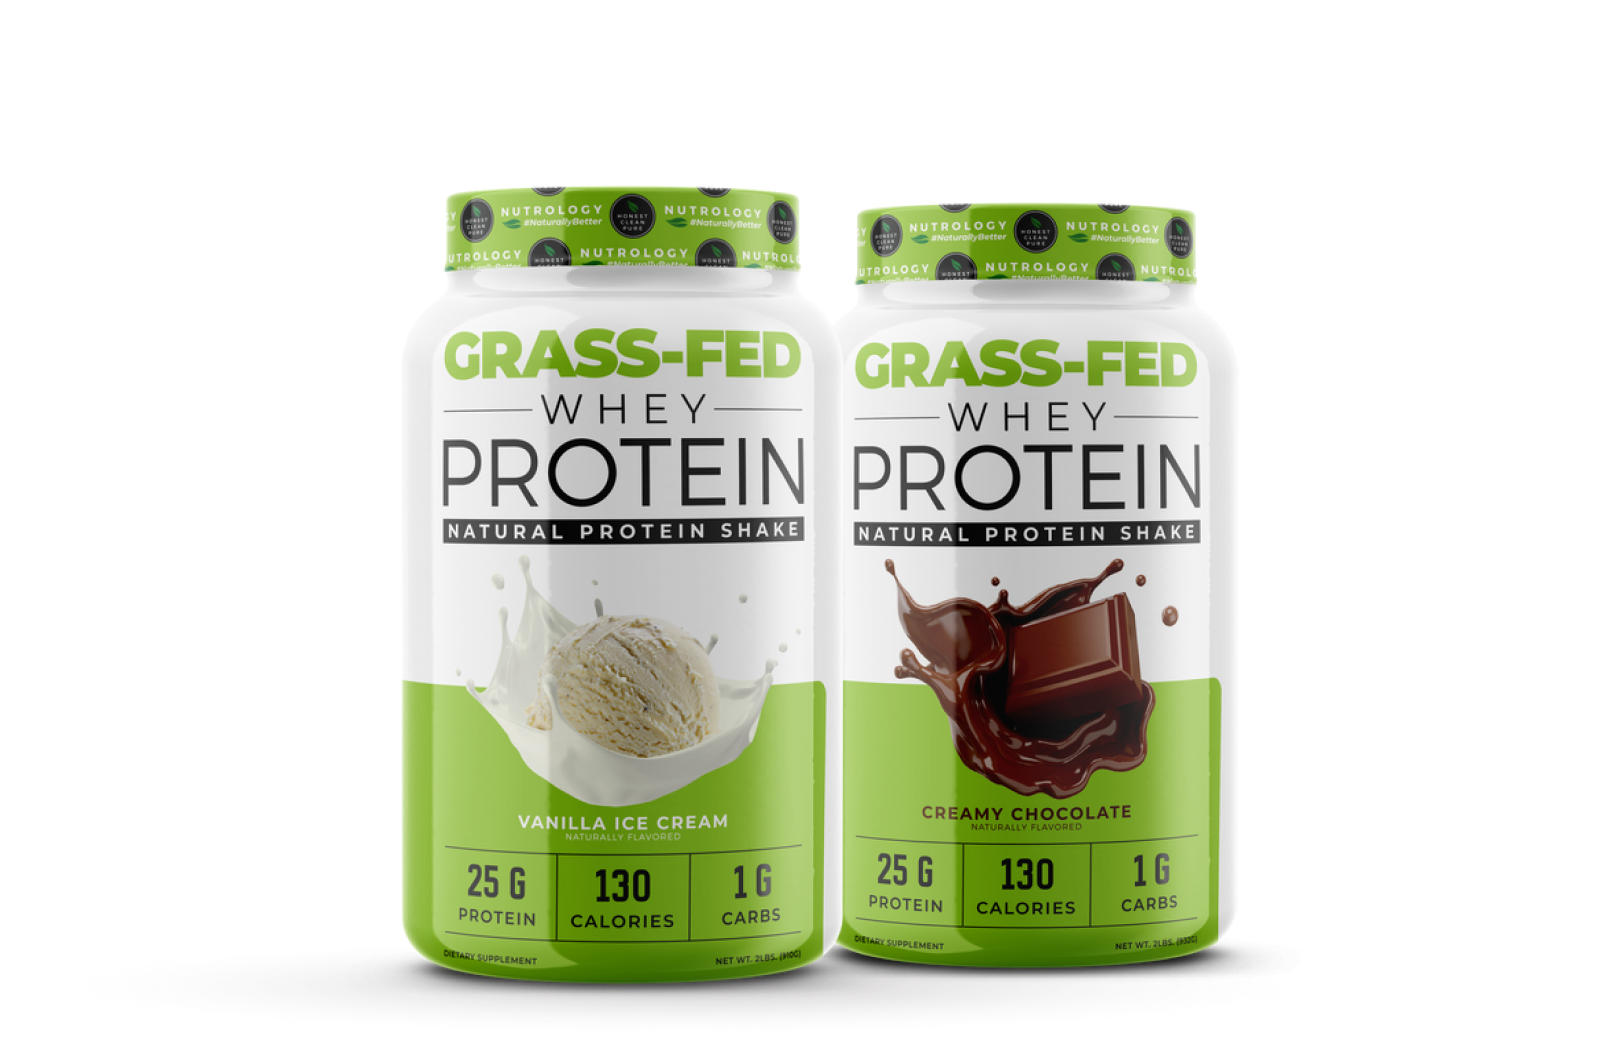 Nutrology Grass Fed Whey Proteins